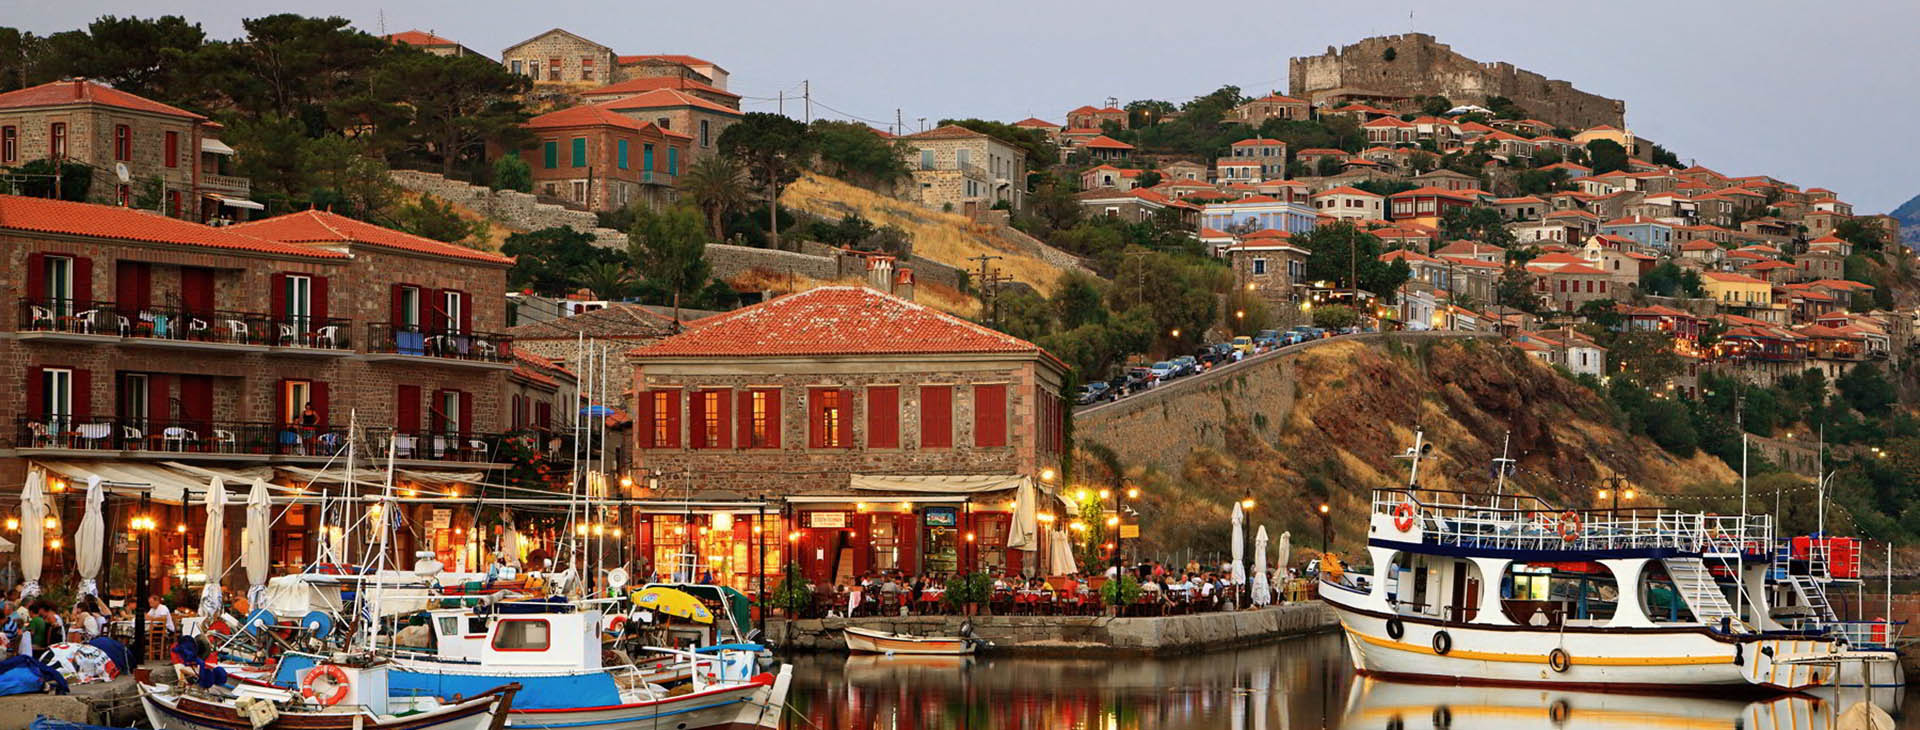 Mytilene town and harbour, Lesvos island